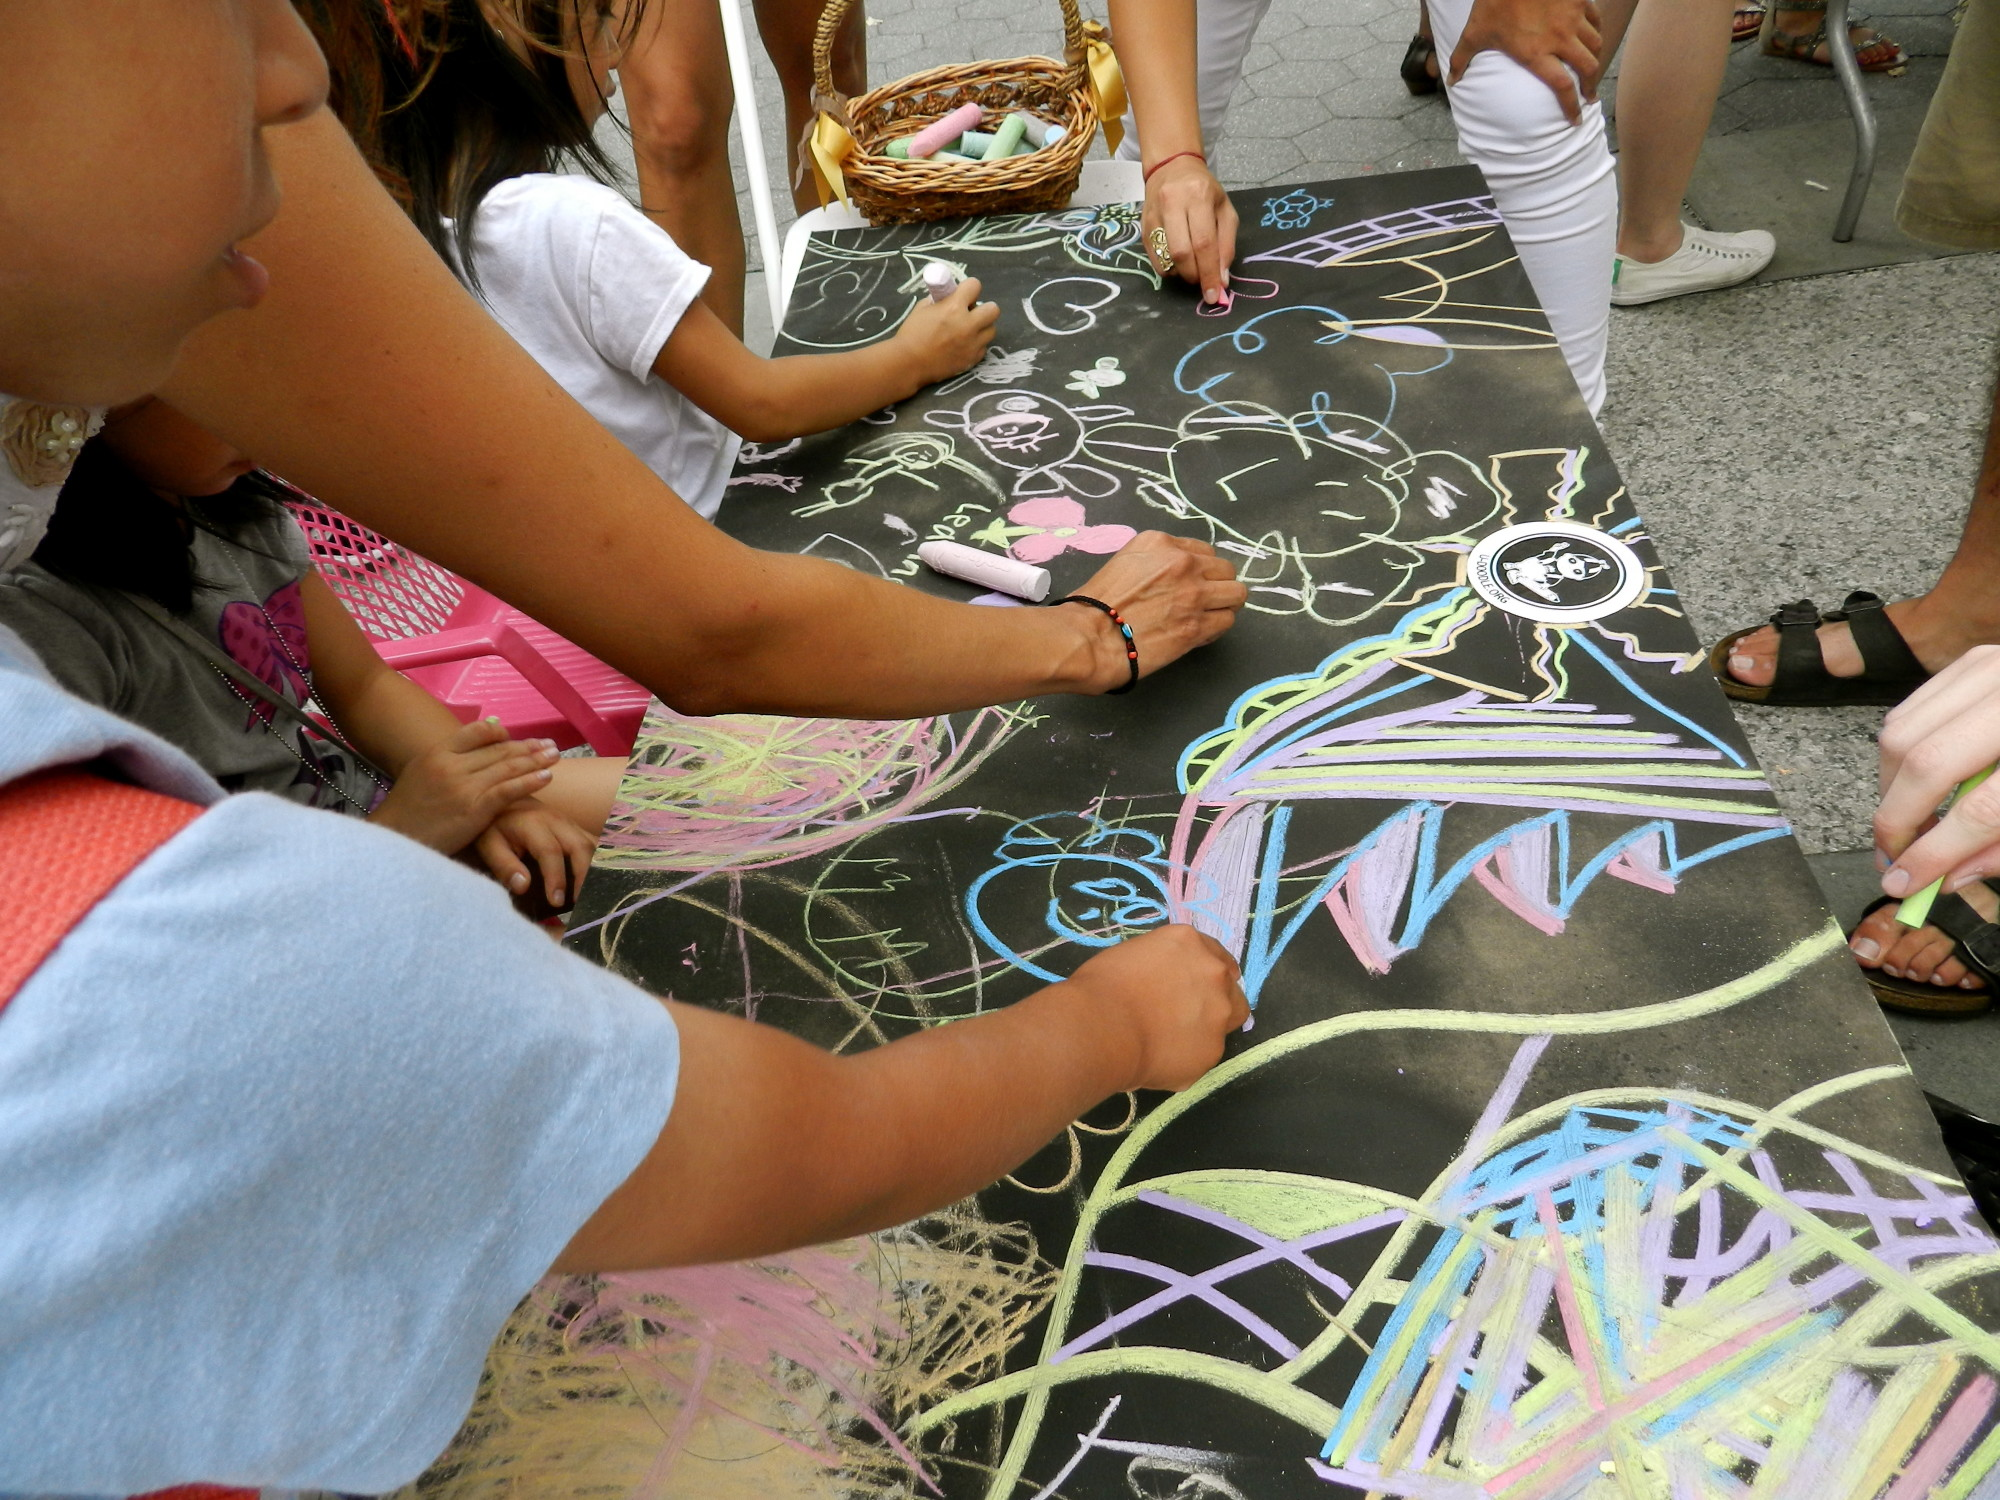 A pop-up public art event called Doodleville. (Courtesy of The Awesome Foundation)